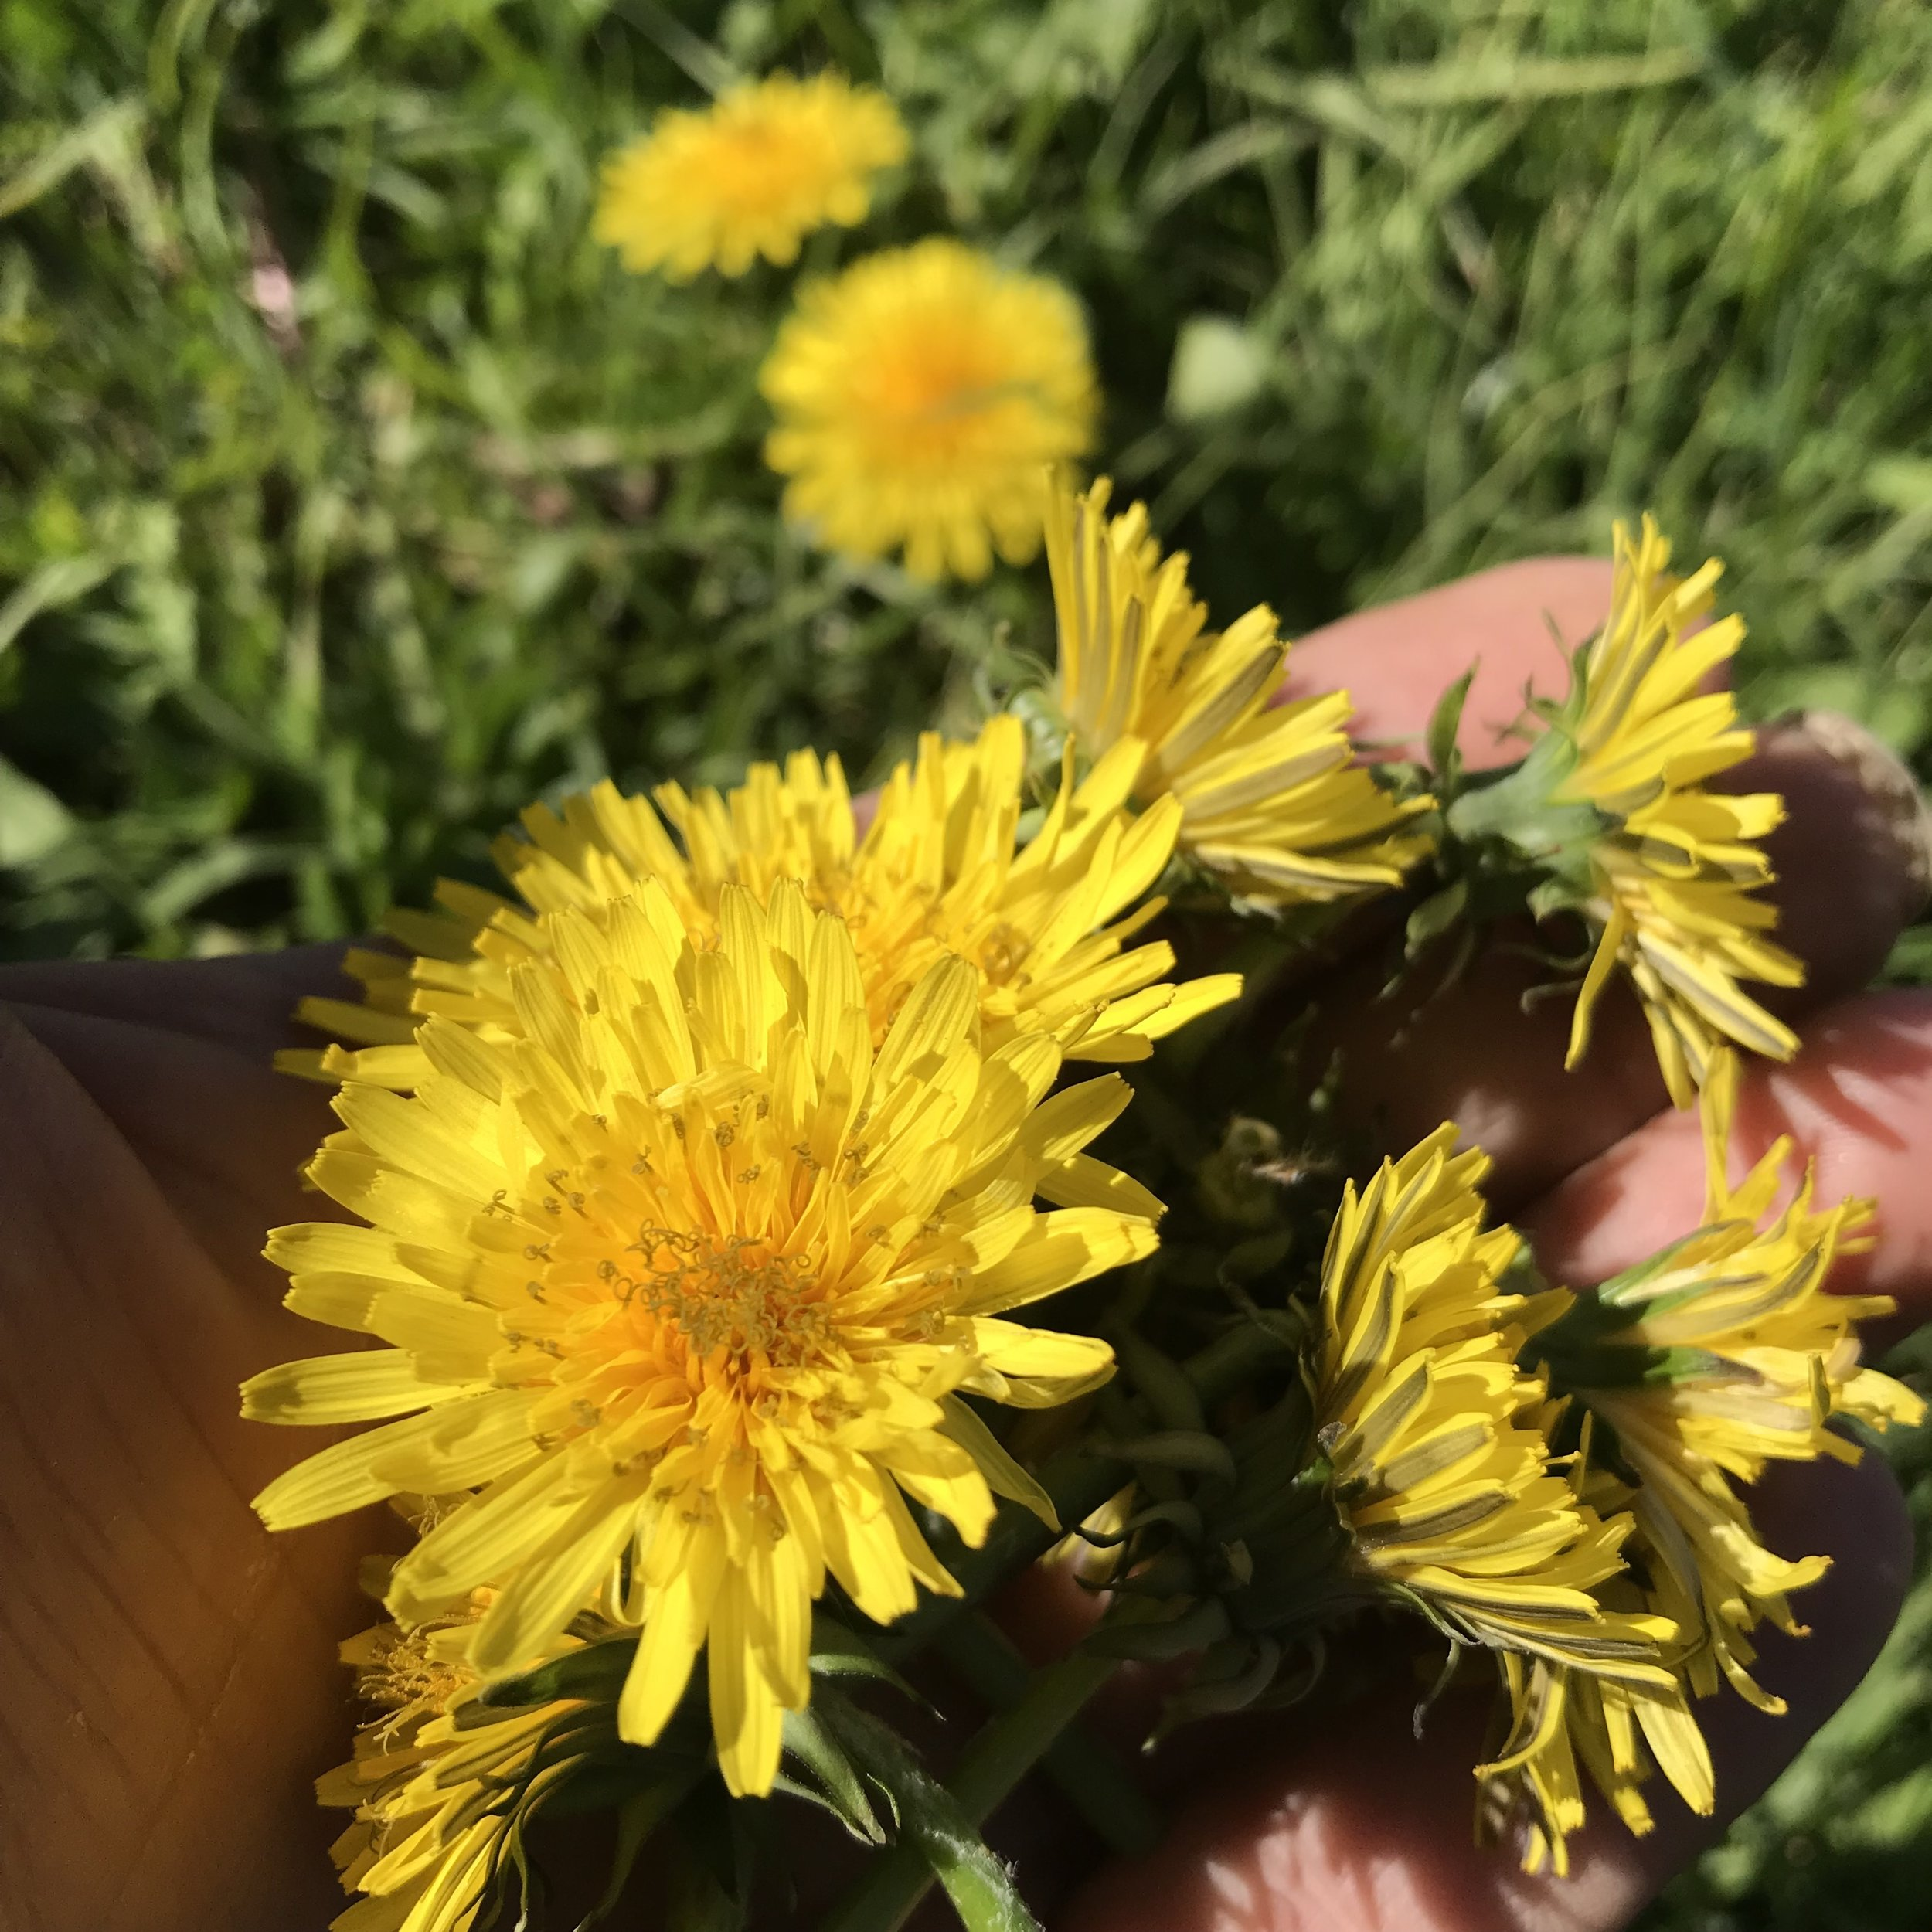 - Dandelion flowersTaraxacum officinaleLimited season.Outstanding colour and texture. Sweet and bitter, loved all around the world in fritters, infused with honey, vinegar or soda, or just fresh as garnish.Available in 600ml punnets.